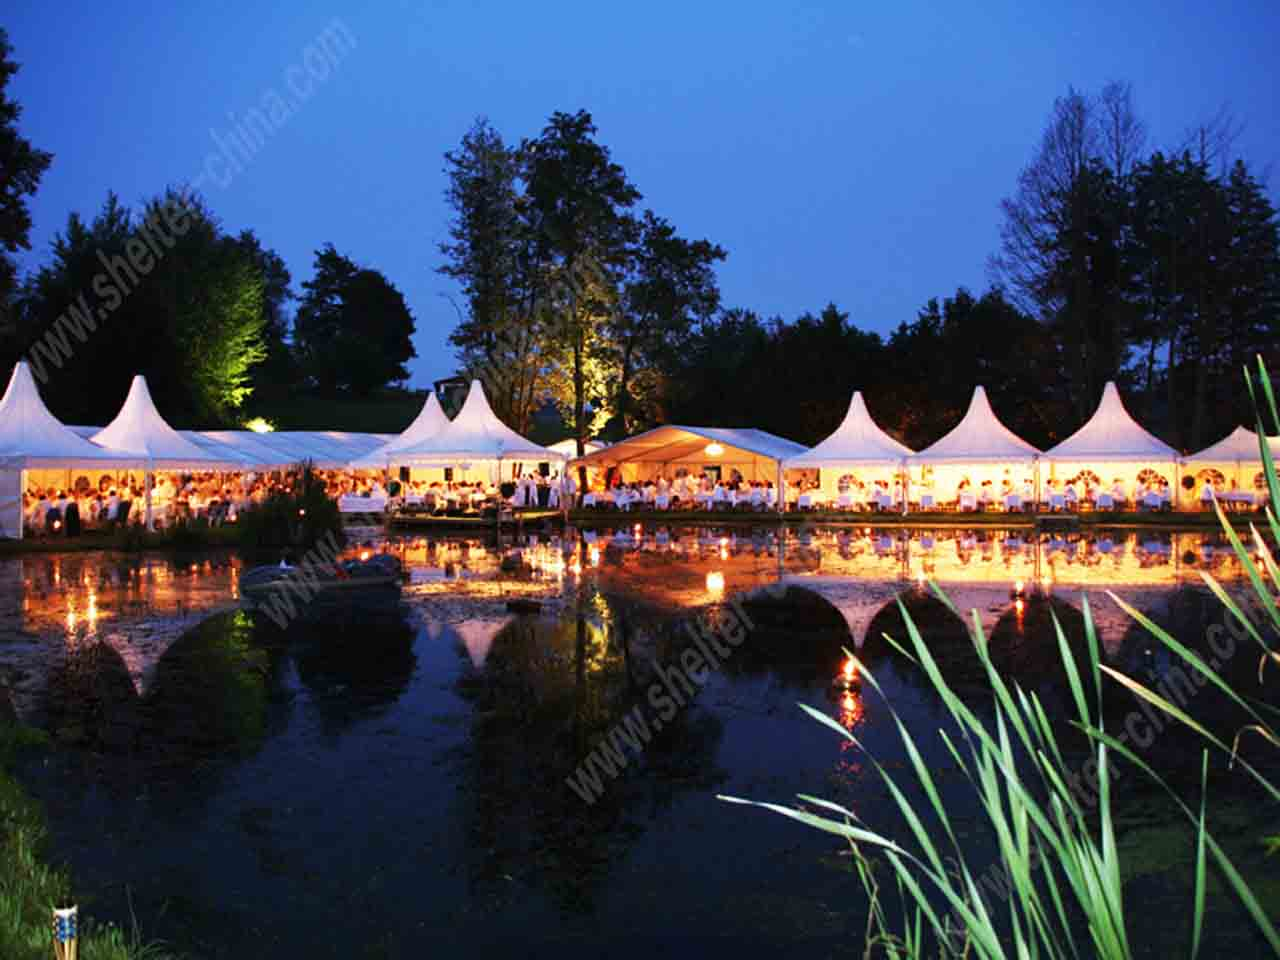 Pagoda Garden Tent Hire for Parties